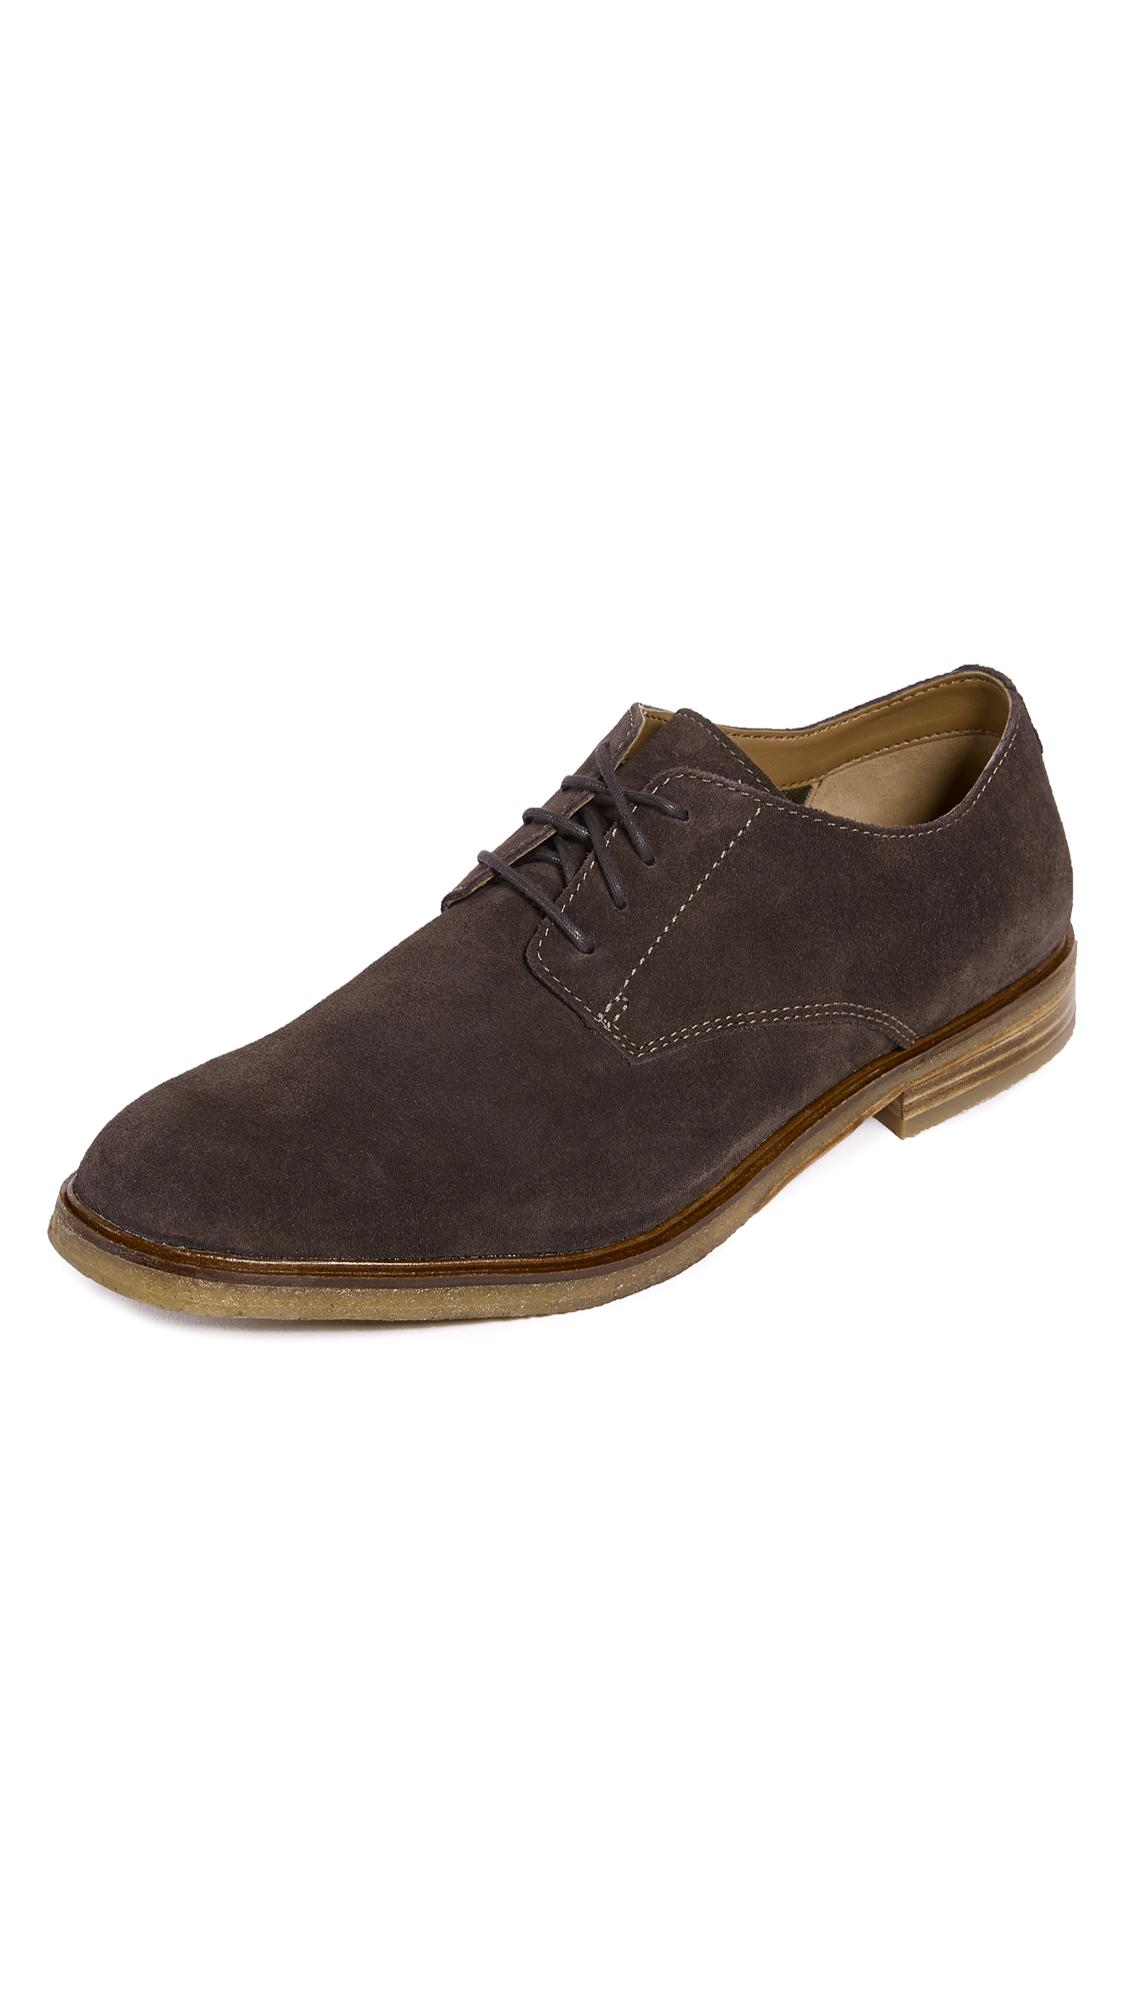 Clarks Clarkdale Moon Suede Oxfords In Dark Brown